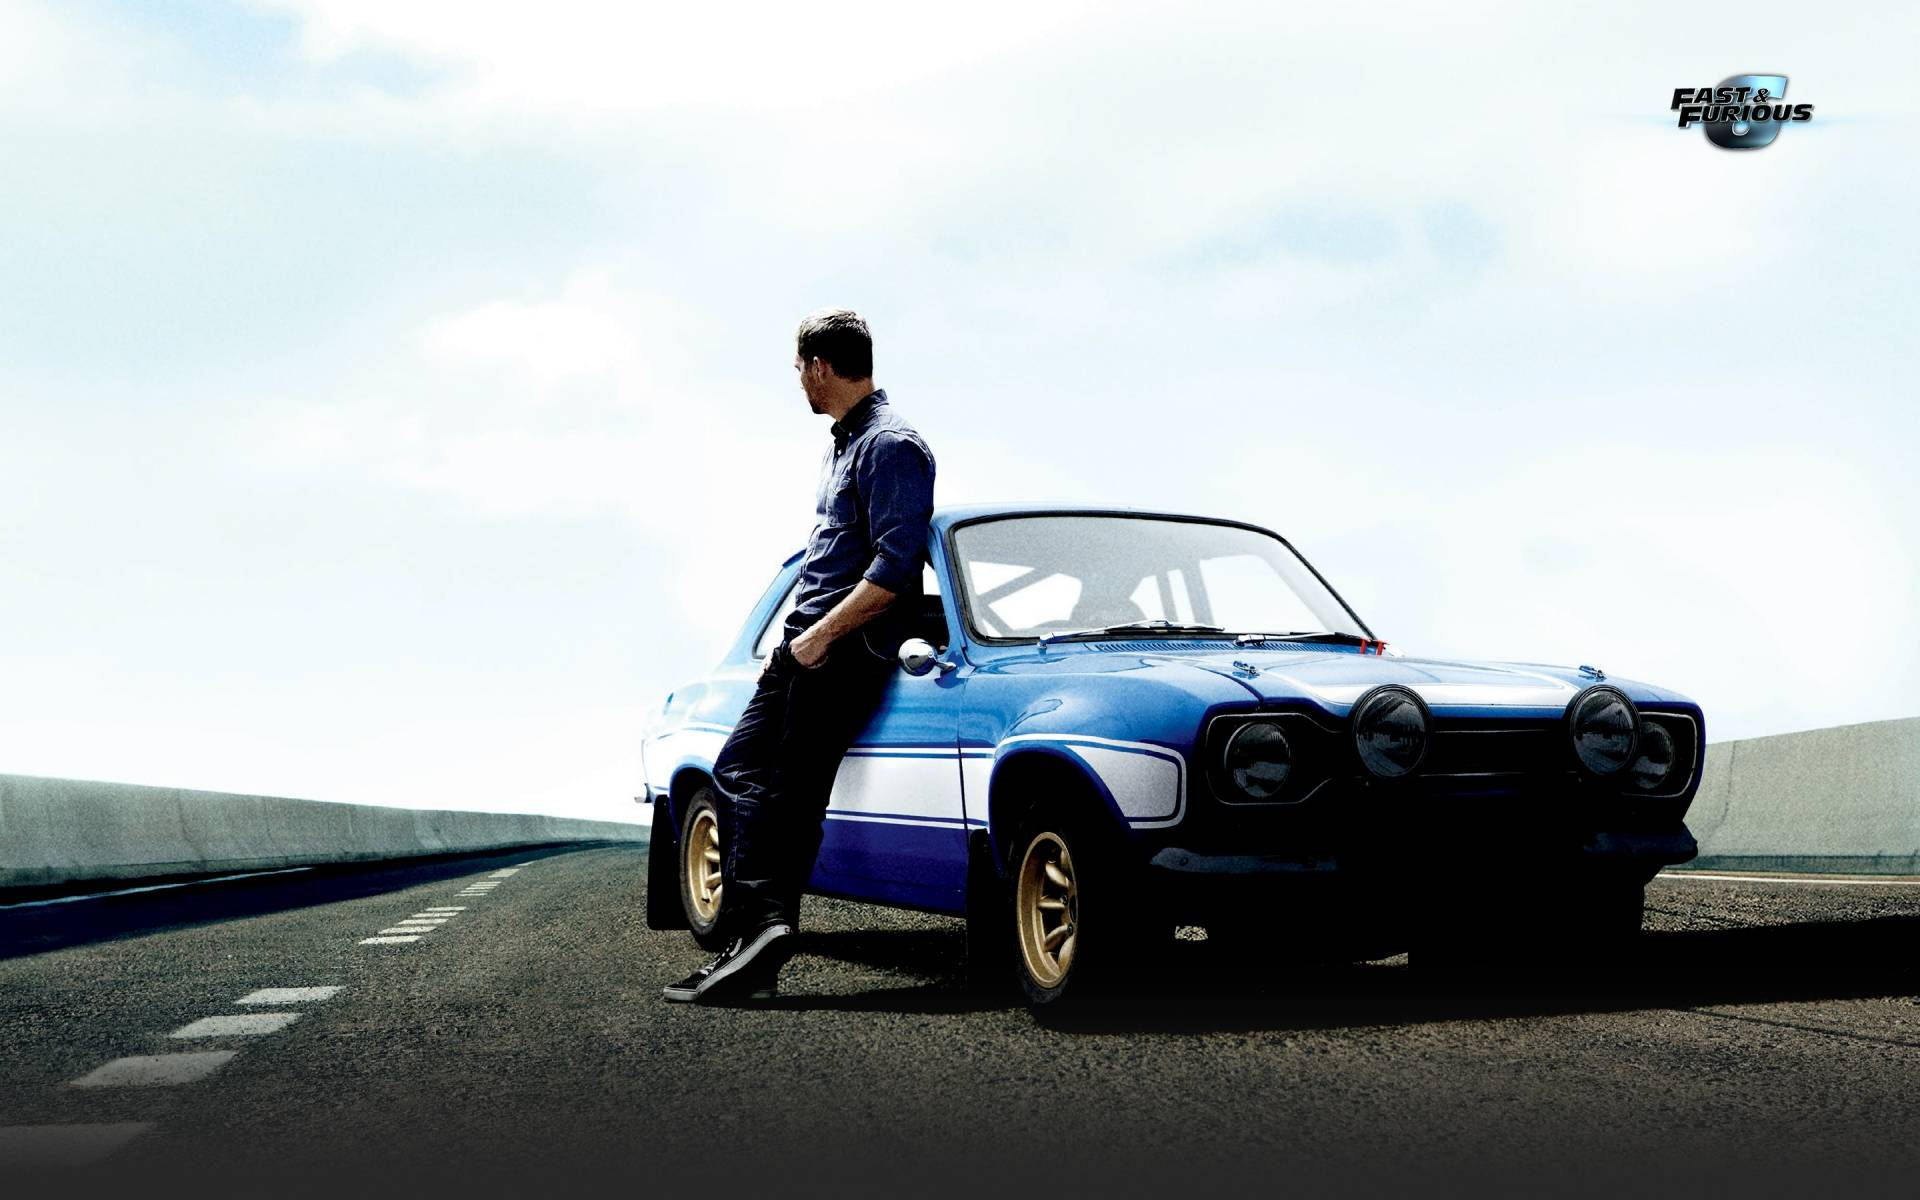 fast and furious 6 cars wallpapers hd background 9 hd wallpapers - Fast And Furious 7 Cars Wallpapers